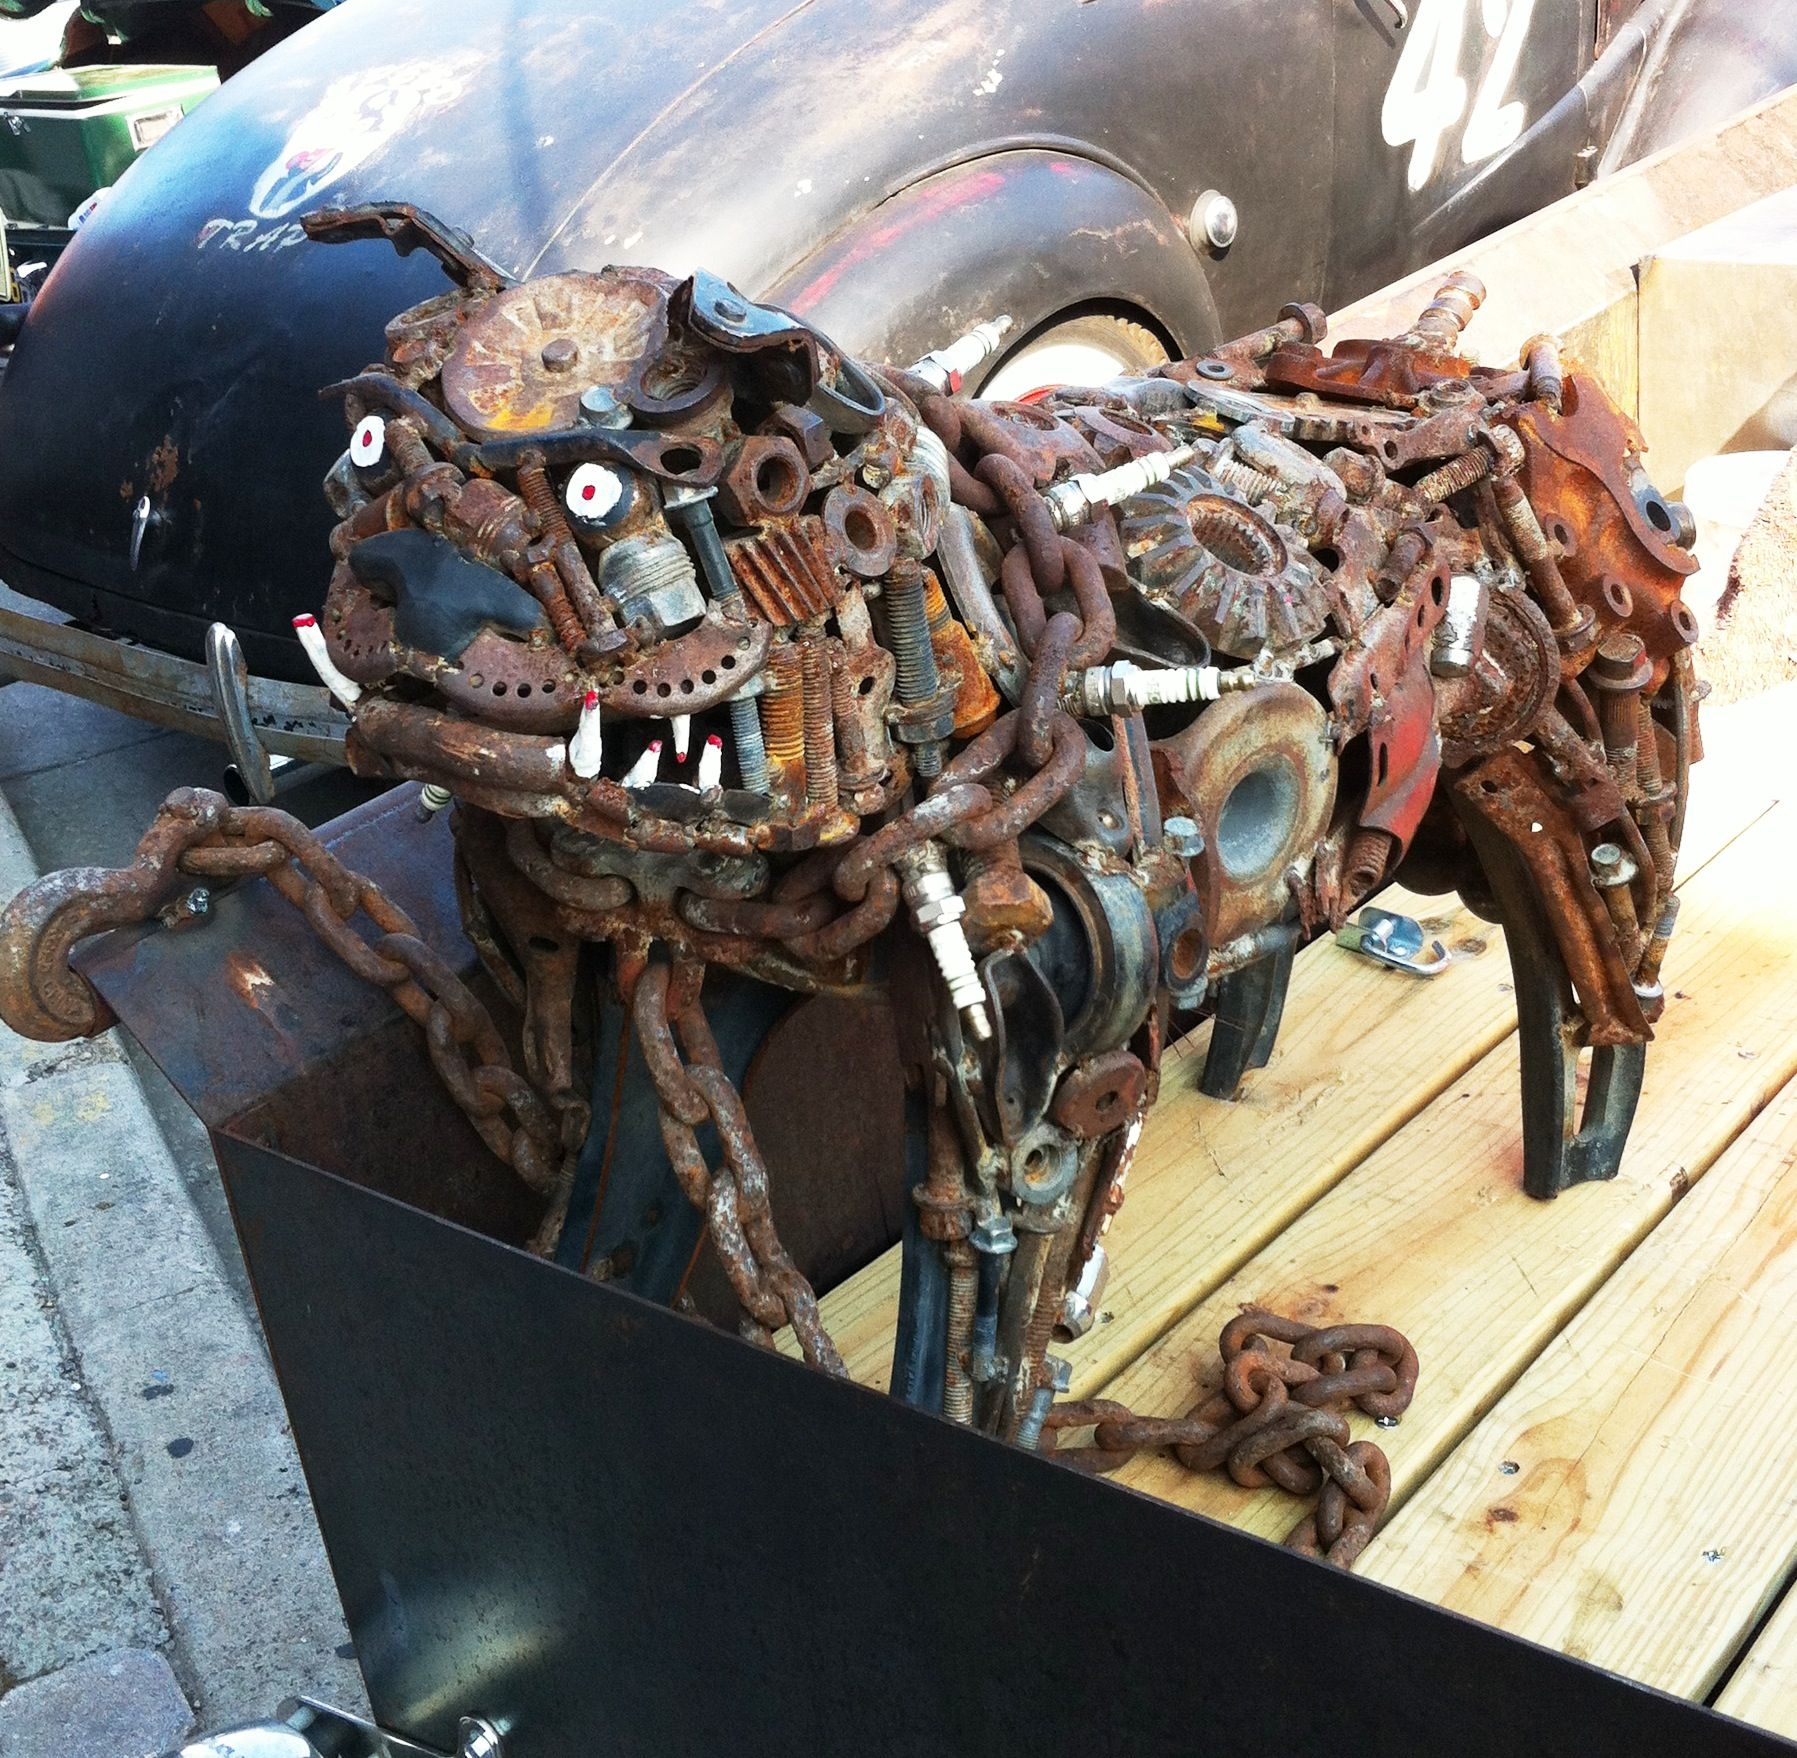 Junk yard dog made from nuts, bolts, etc., Super cool! Saw it at the ...